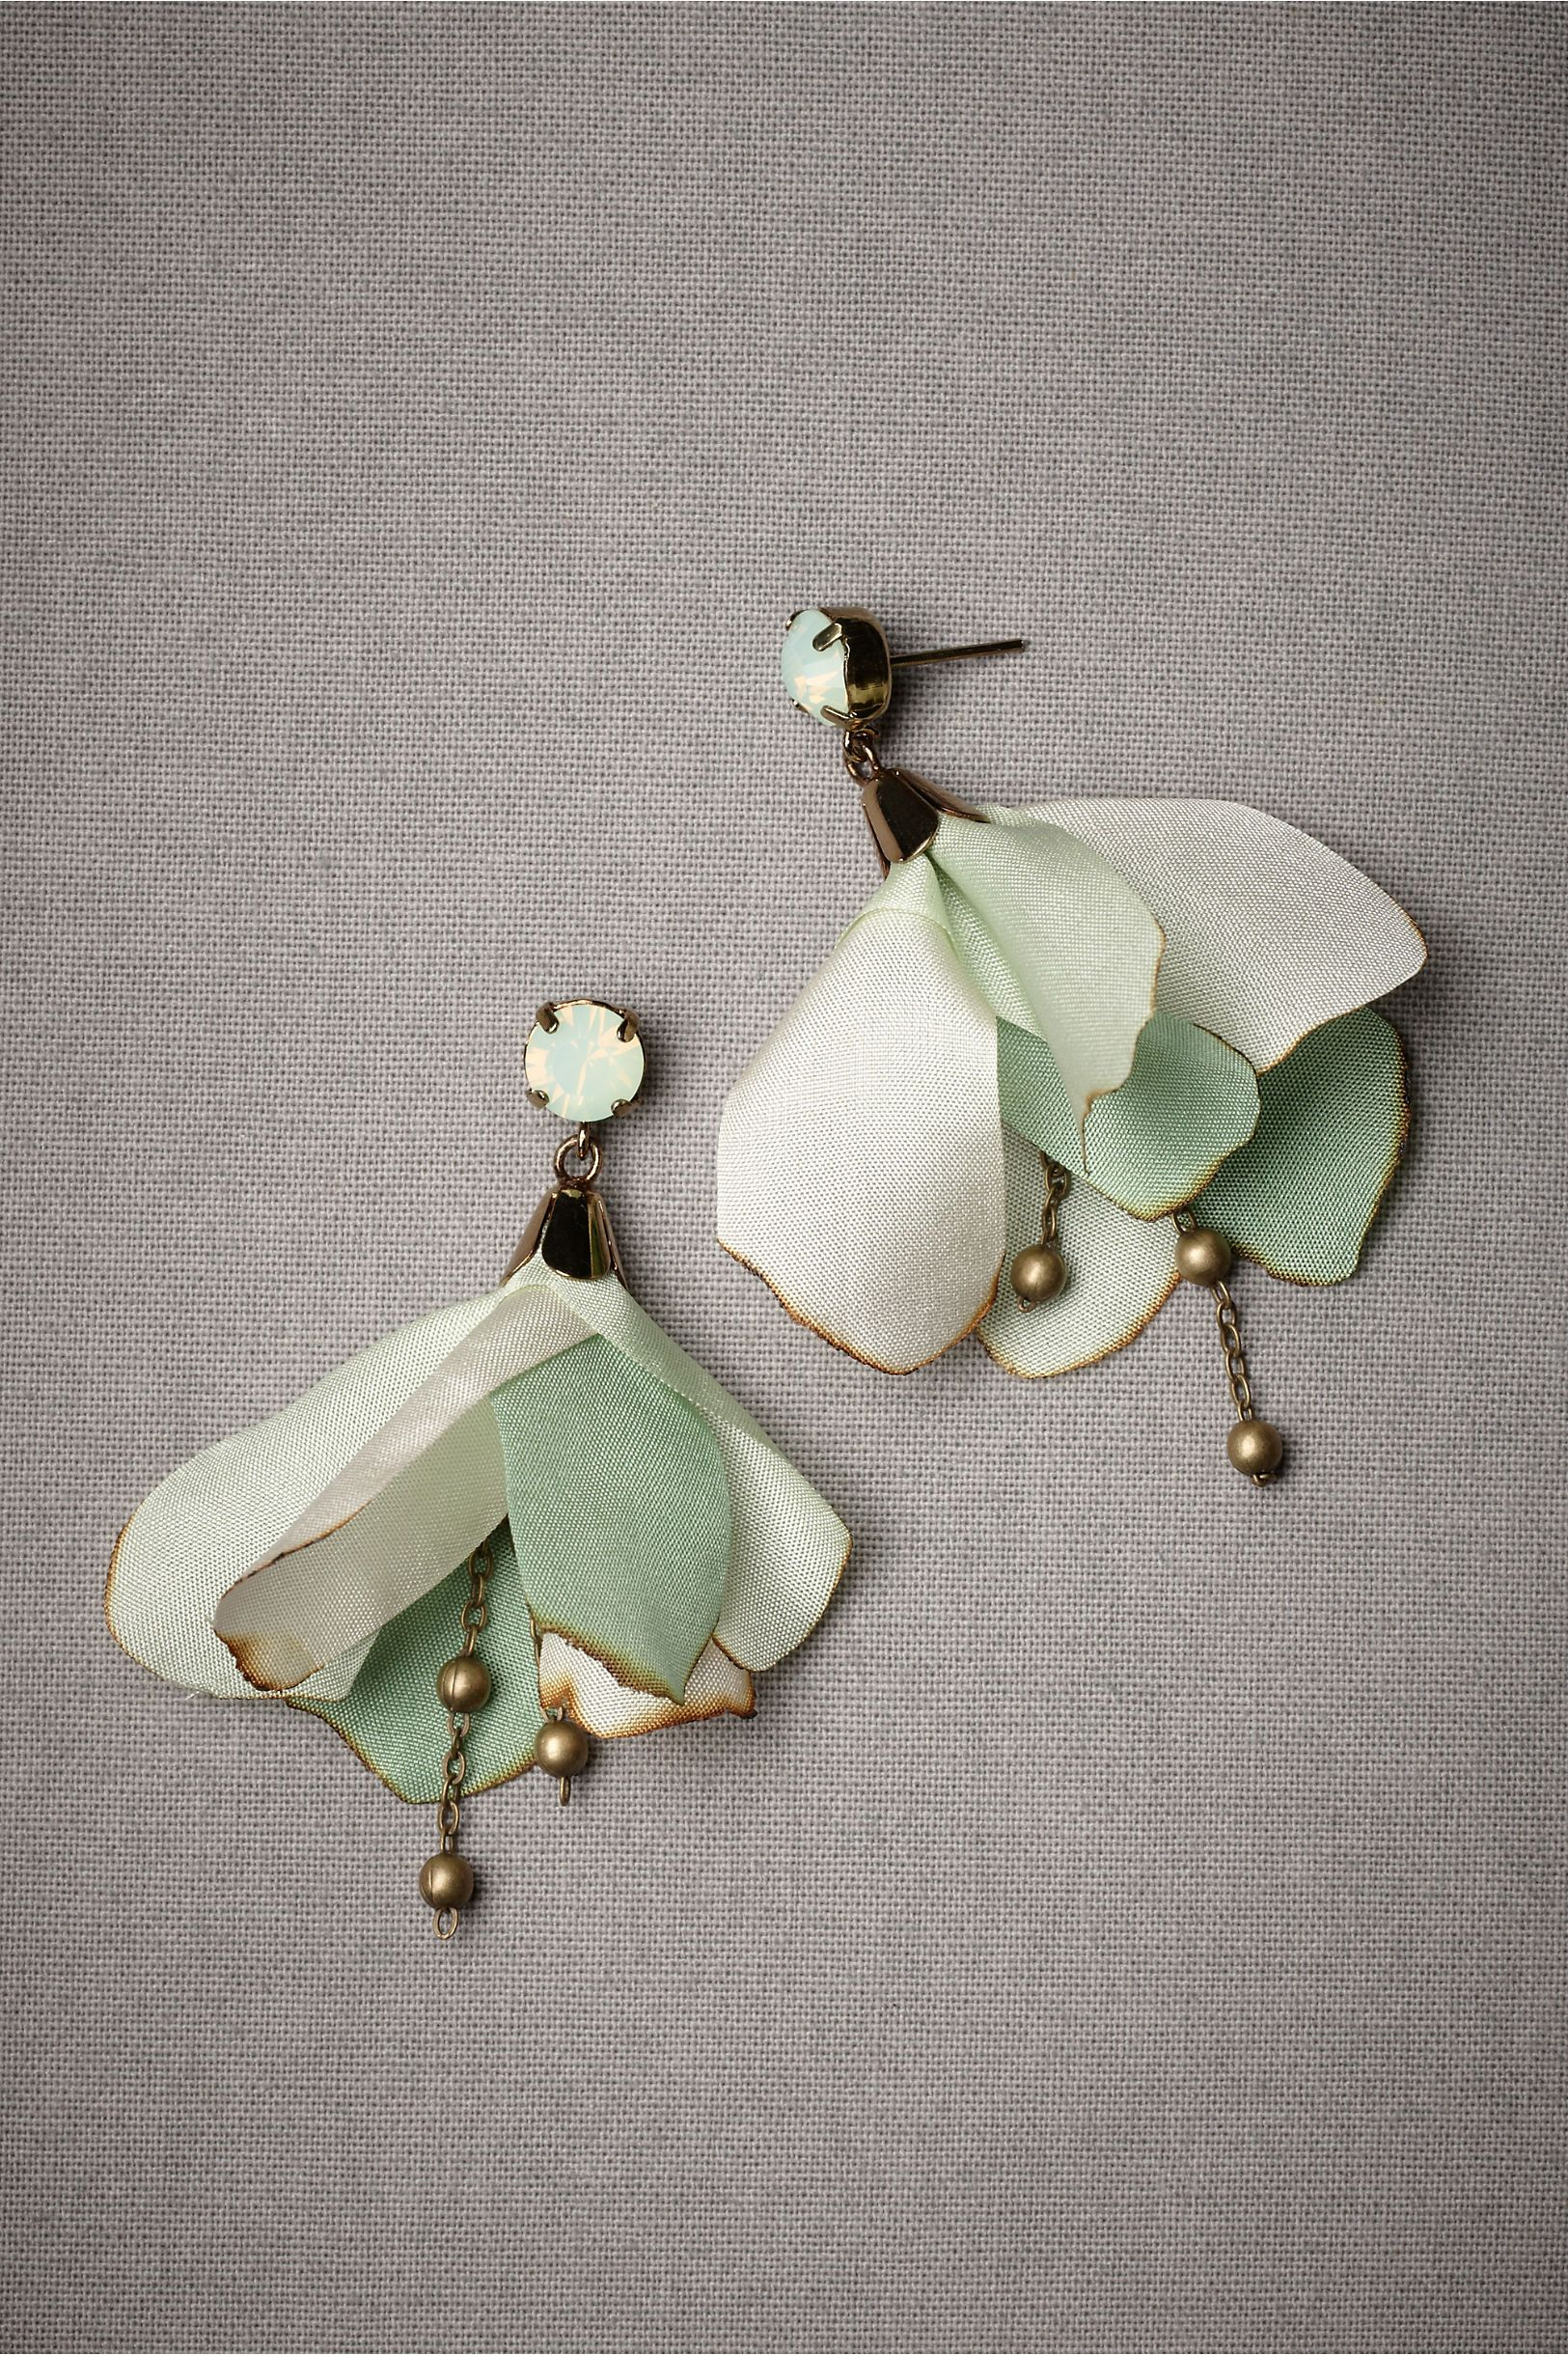 how cool are these! I bet I have enough silk to make a million of these ;)